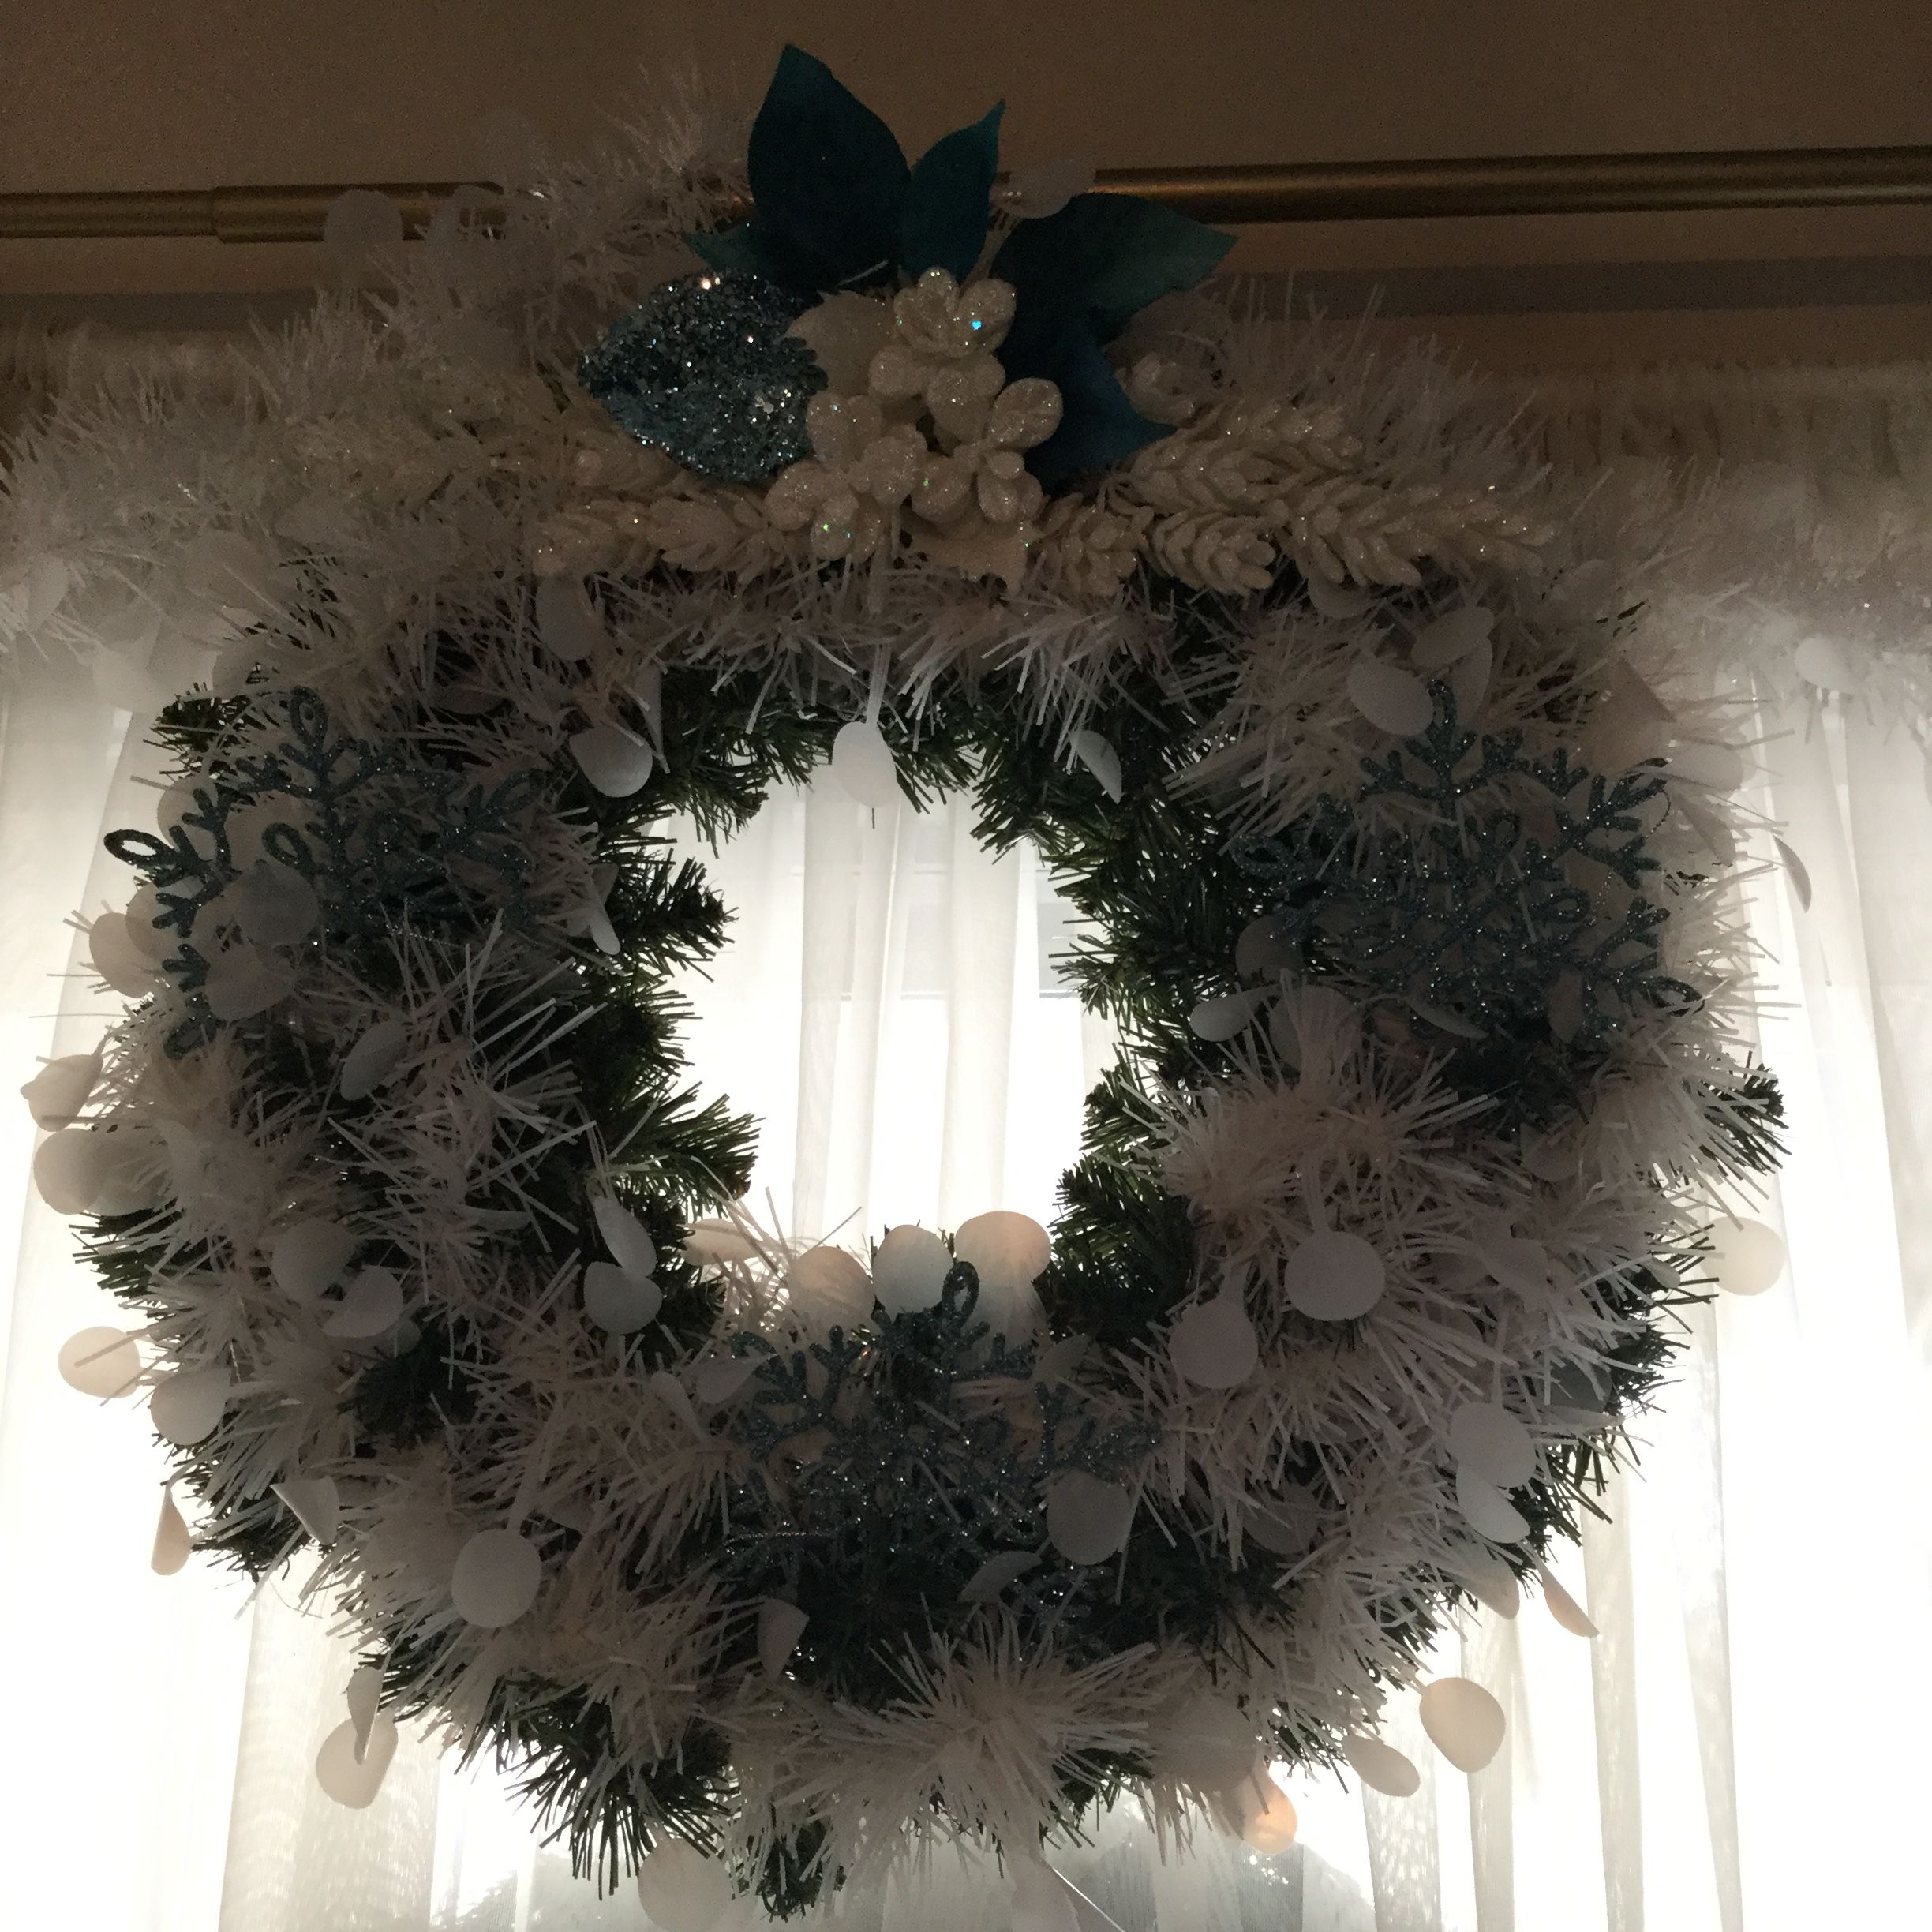 Tiffany And Co, Christmas Decorations, Centerpieces, Wreaths, Garlands, Diy Christmas